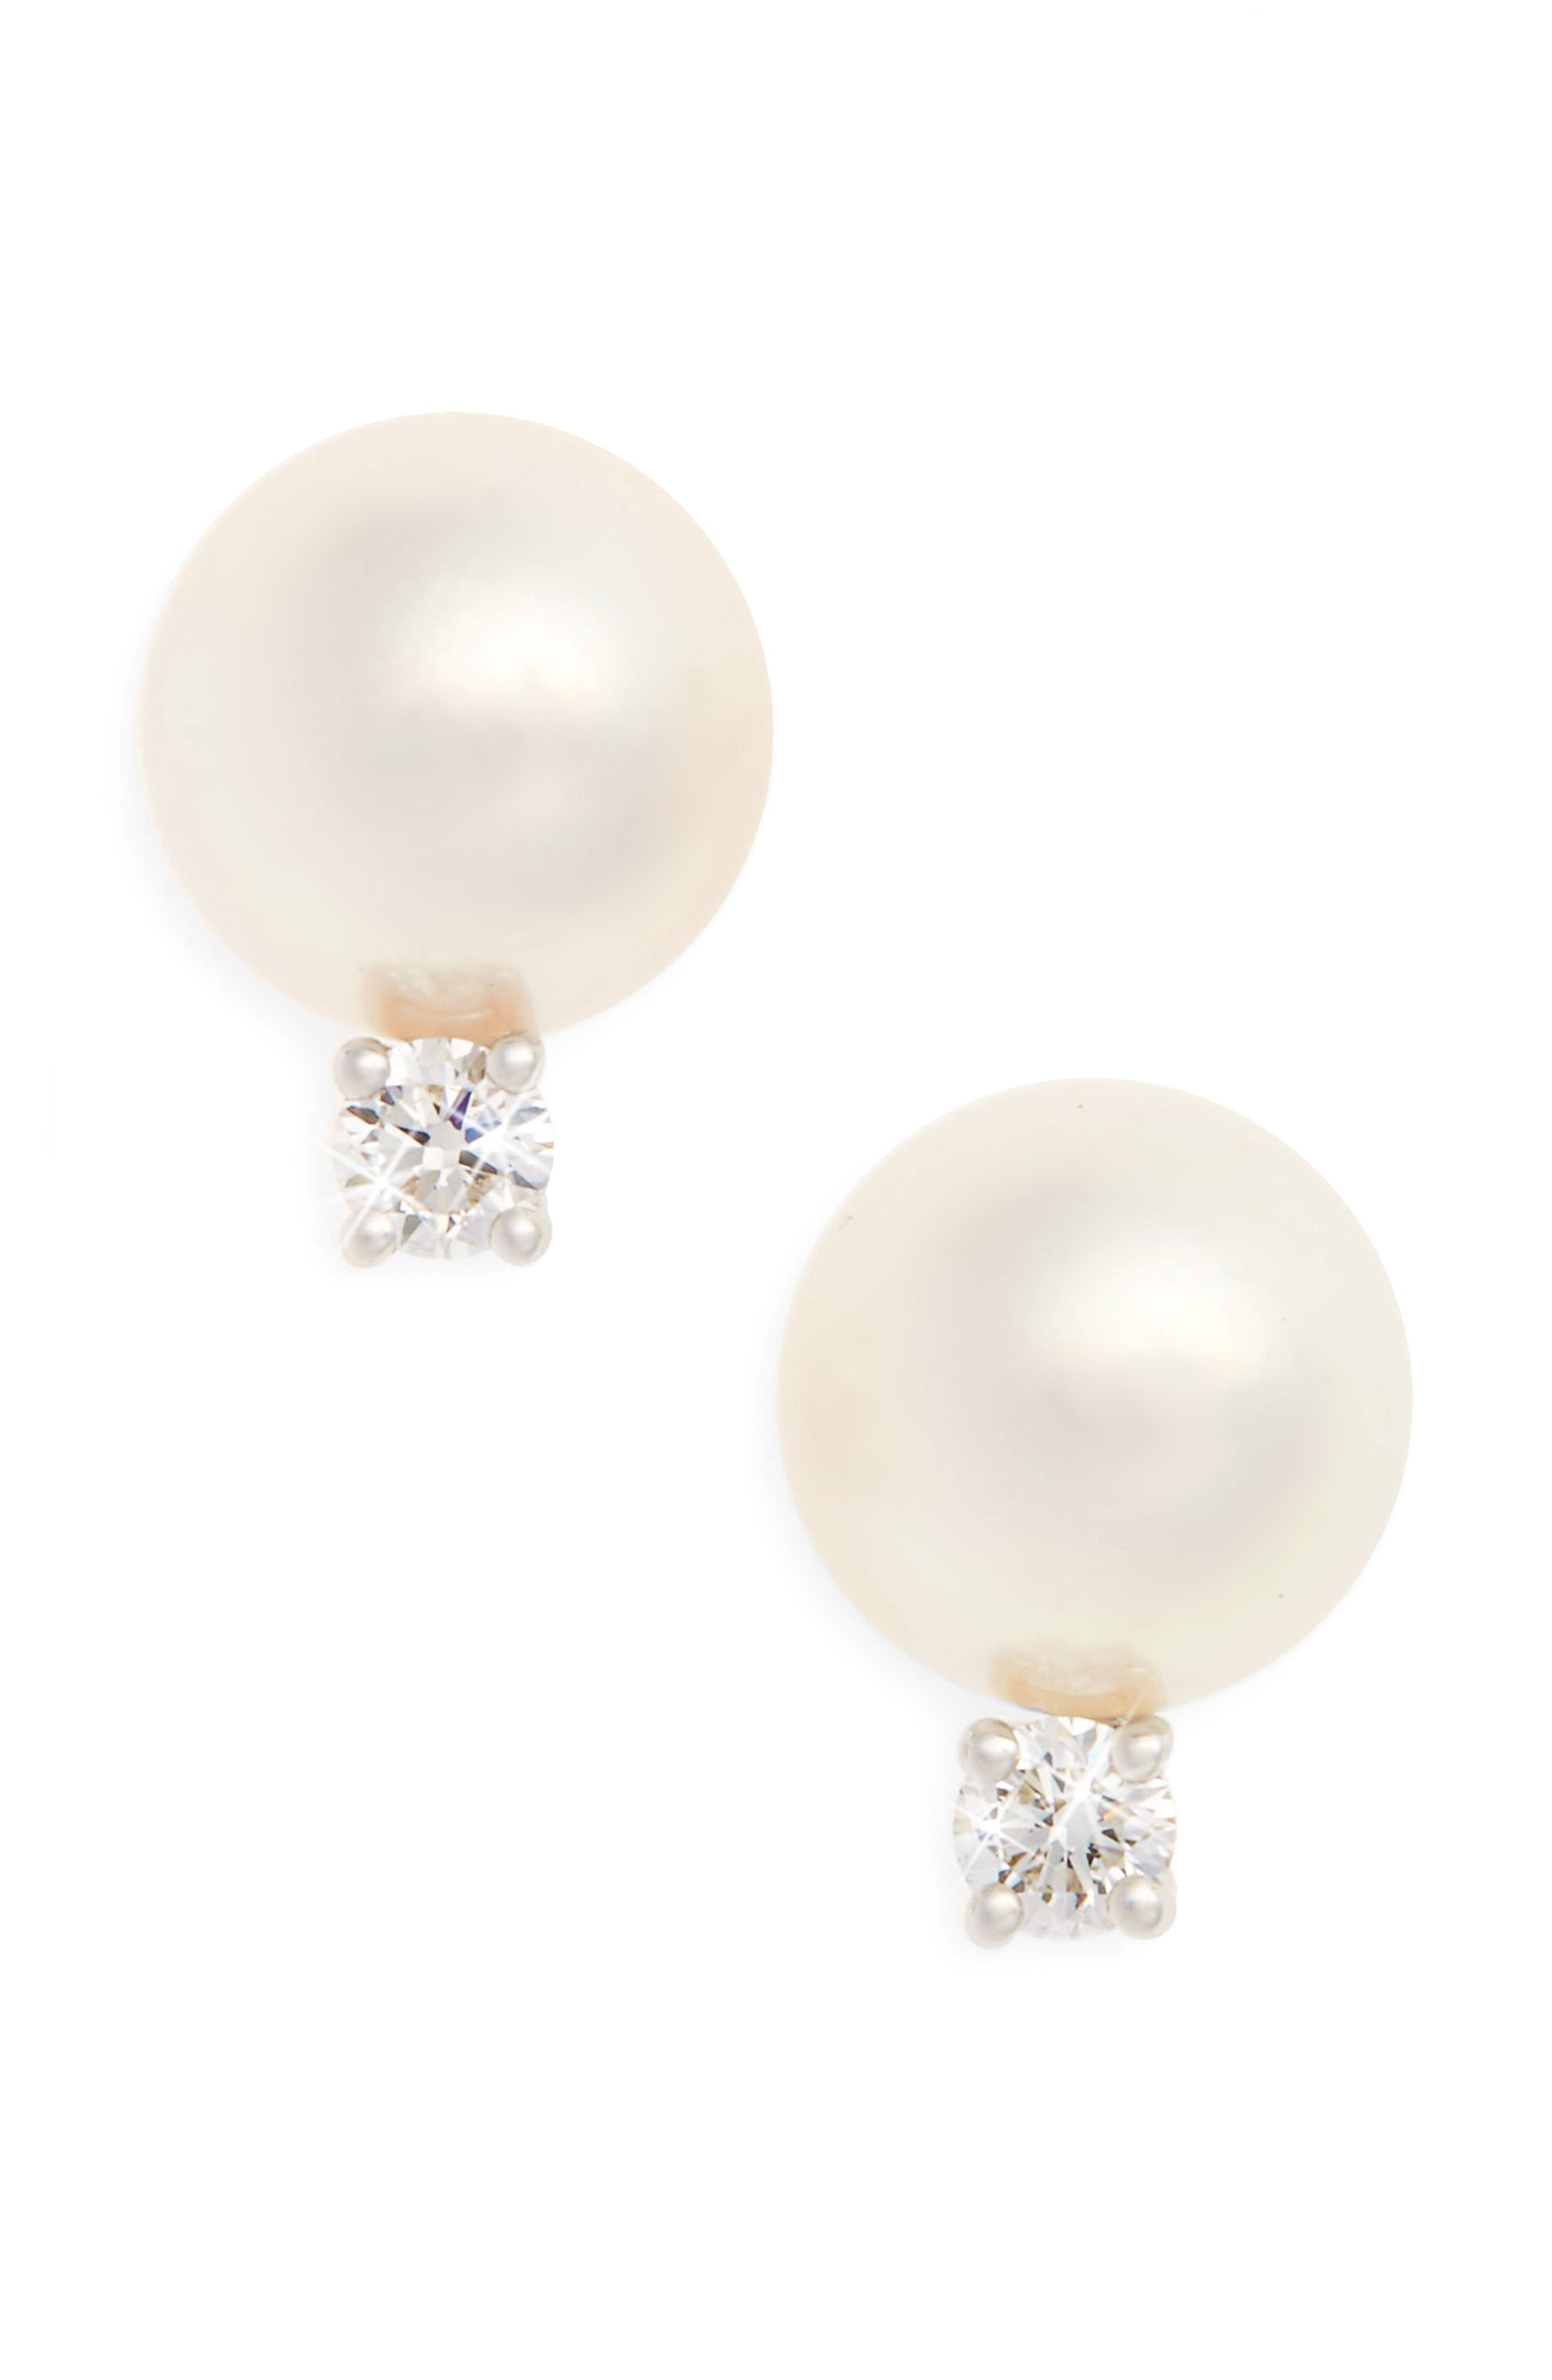 Alternate Image 1 Selected - Mikimoto Akoya Pearl & Diamond Stud Earrings